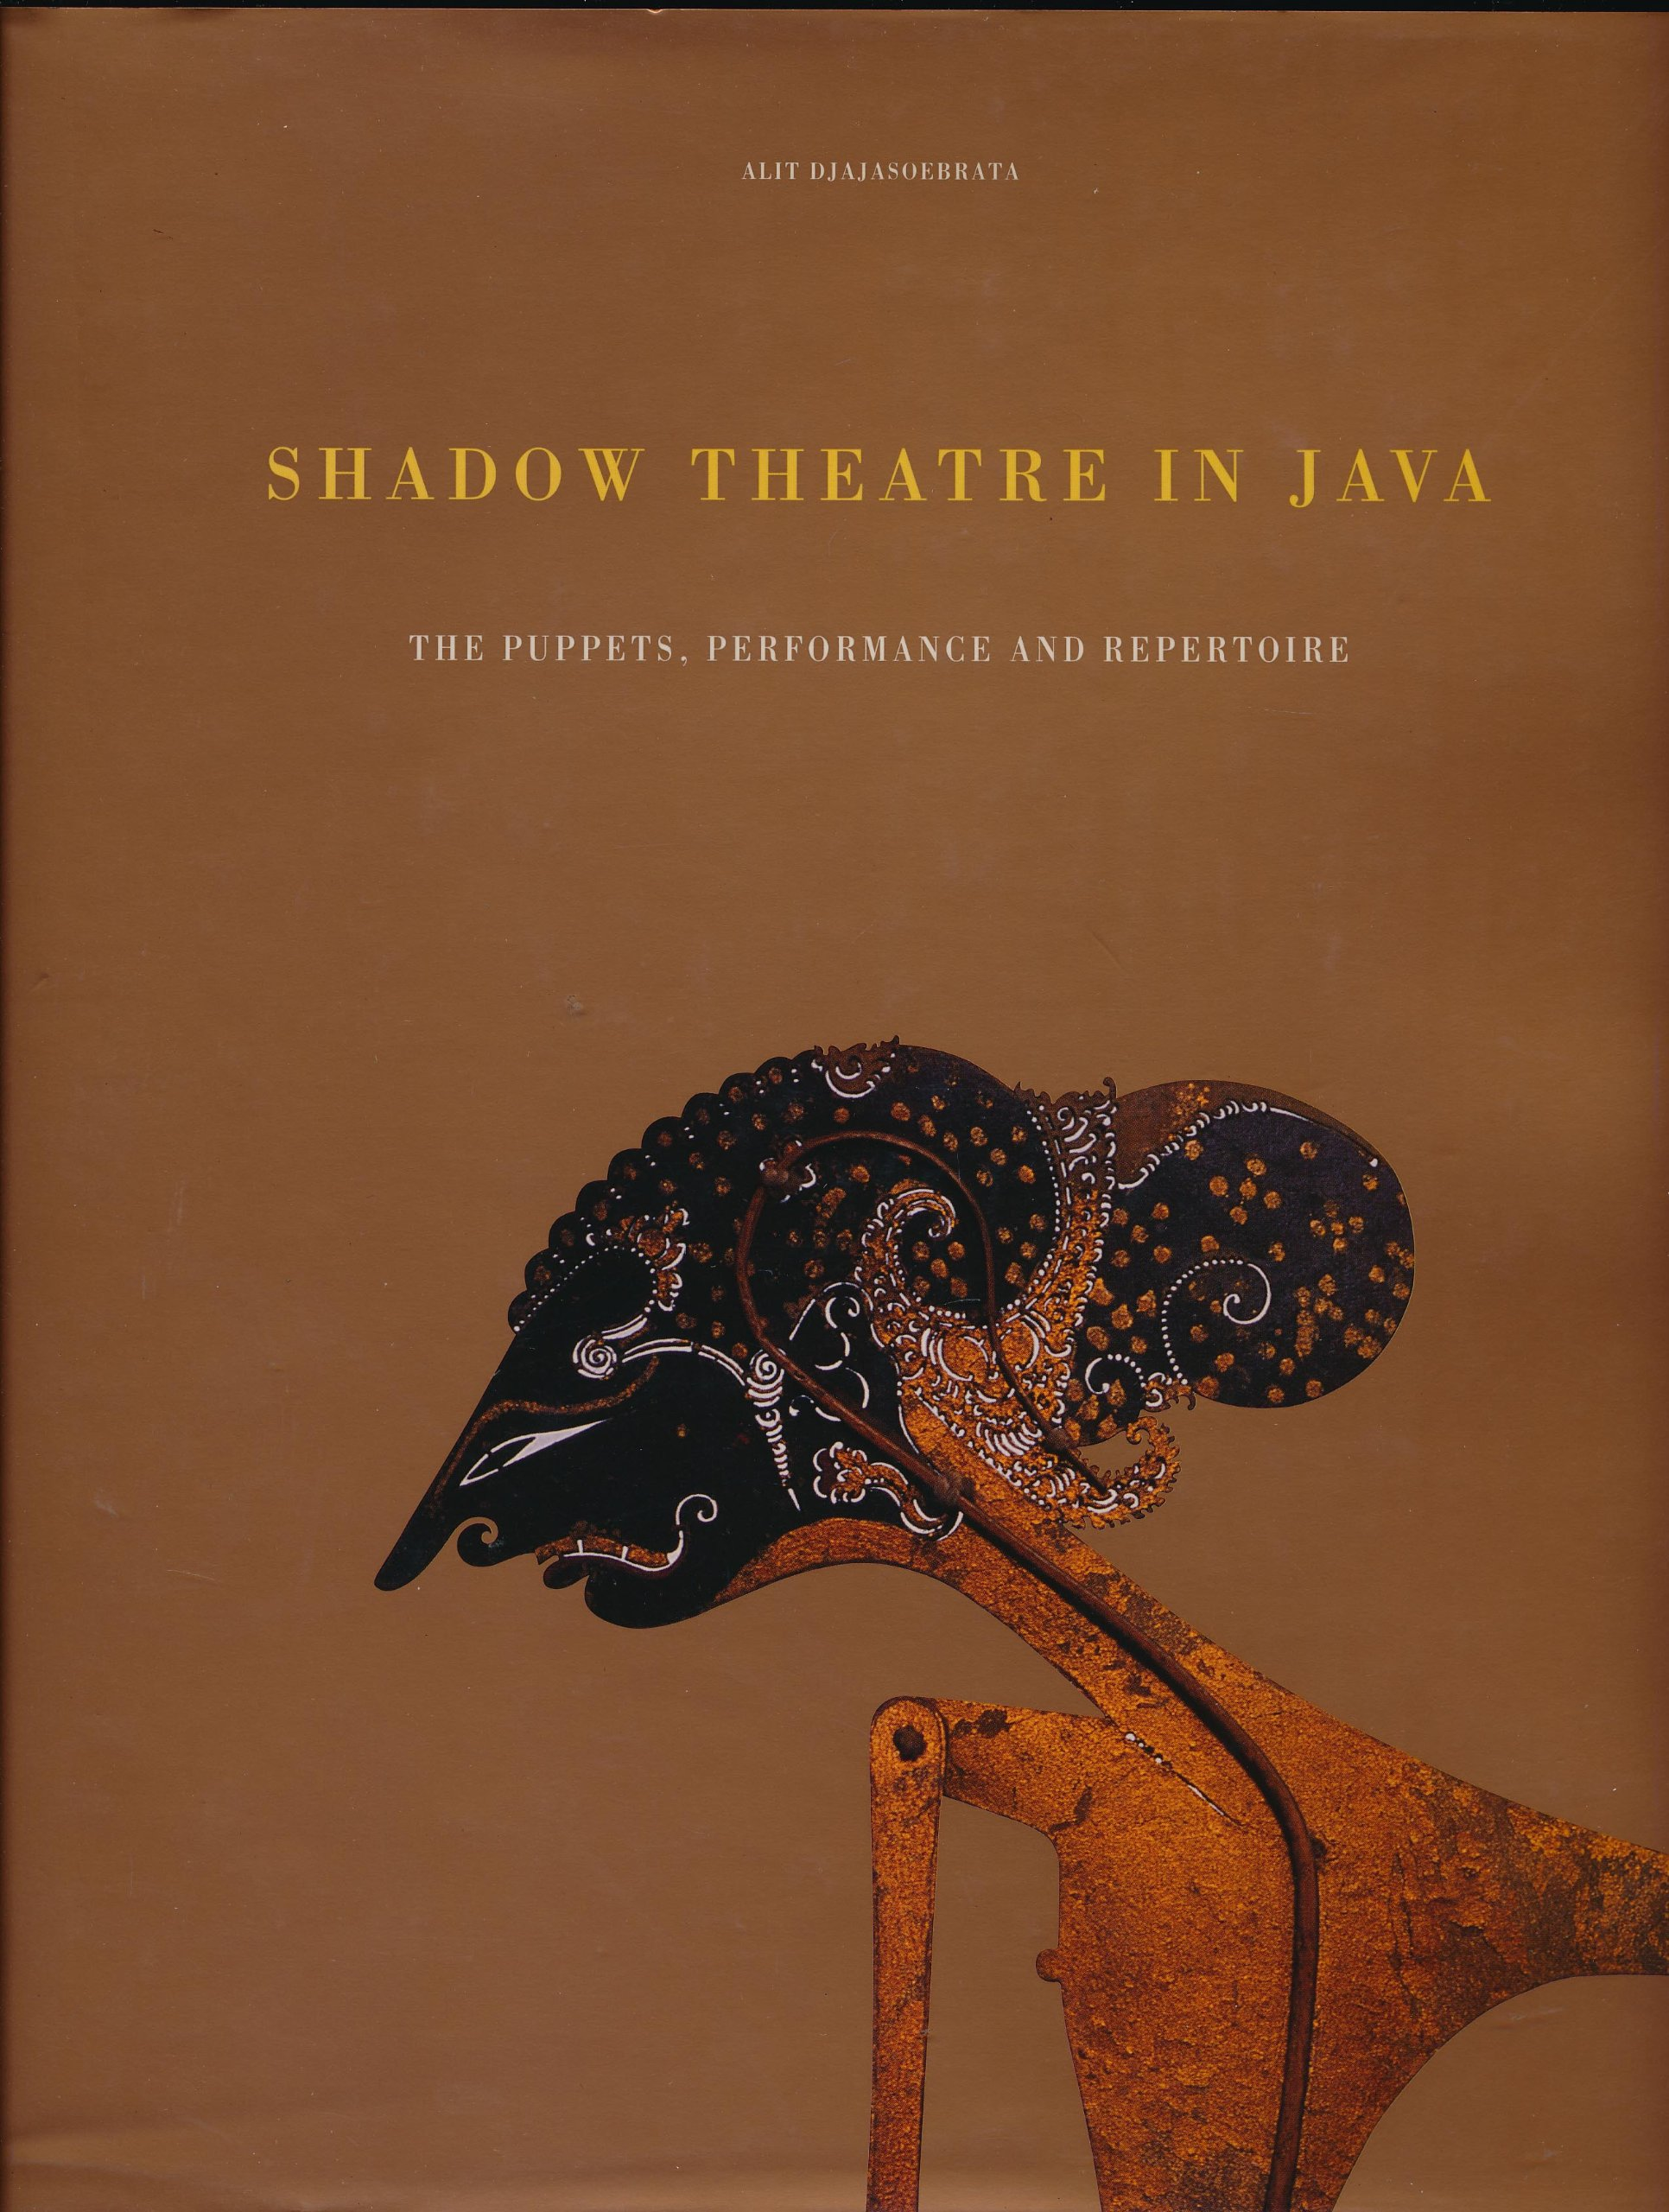 Shadow Theatre in Java: The Puppets, Performance and Repertoire